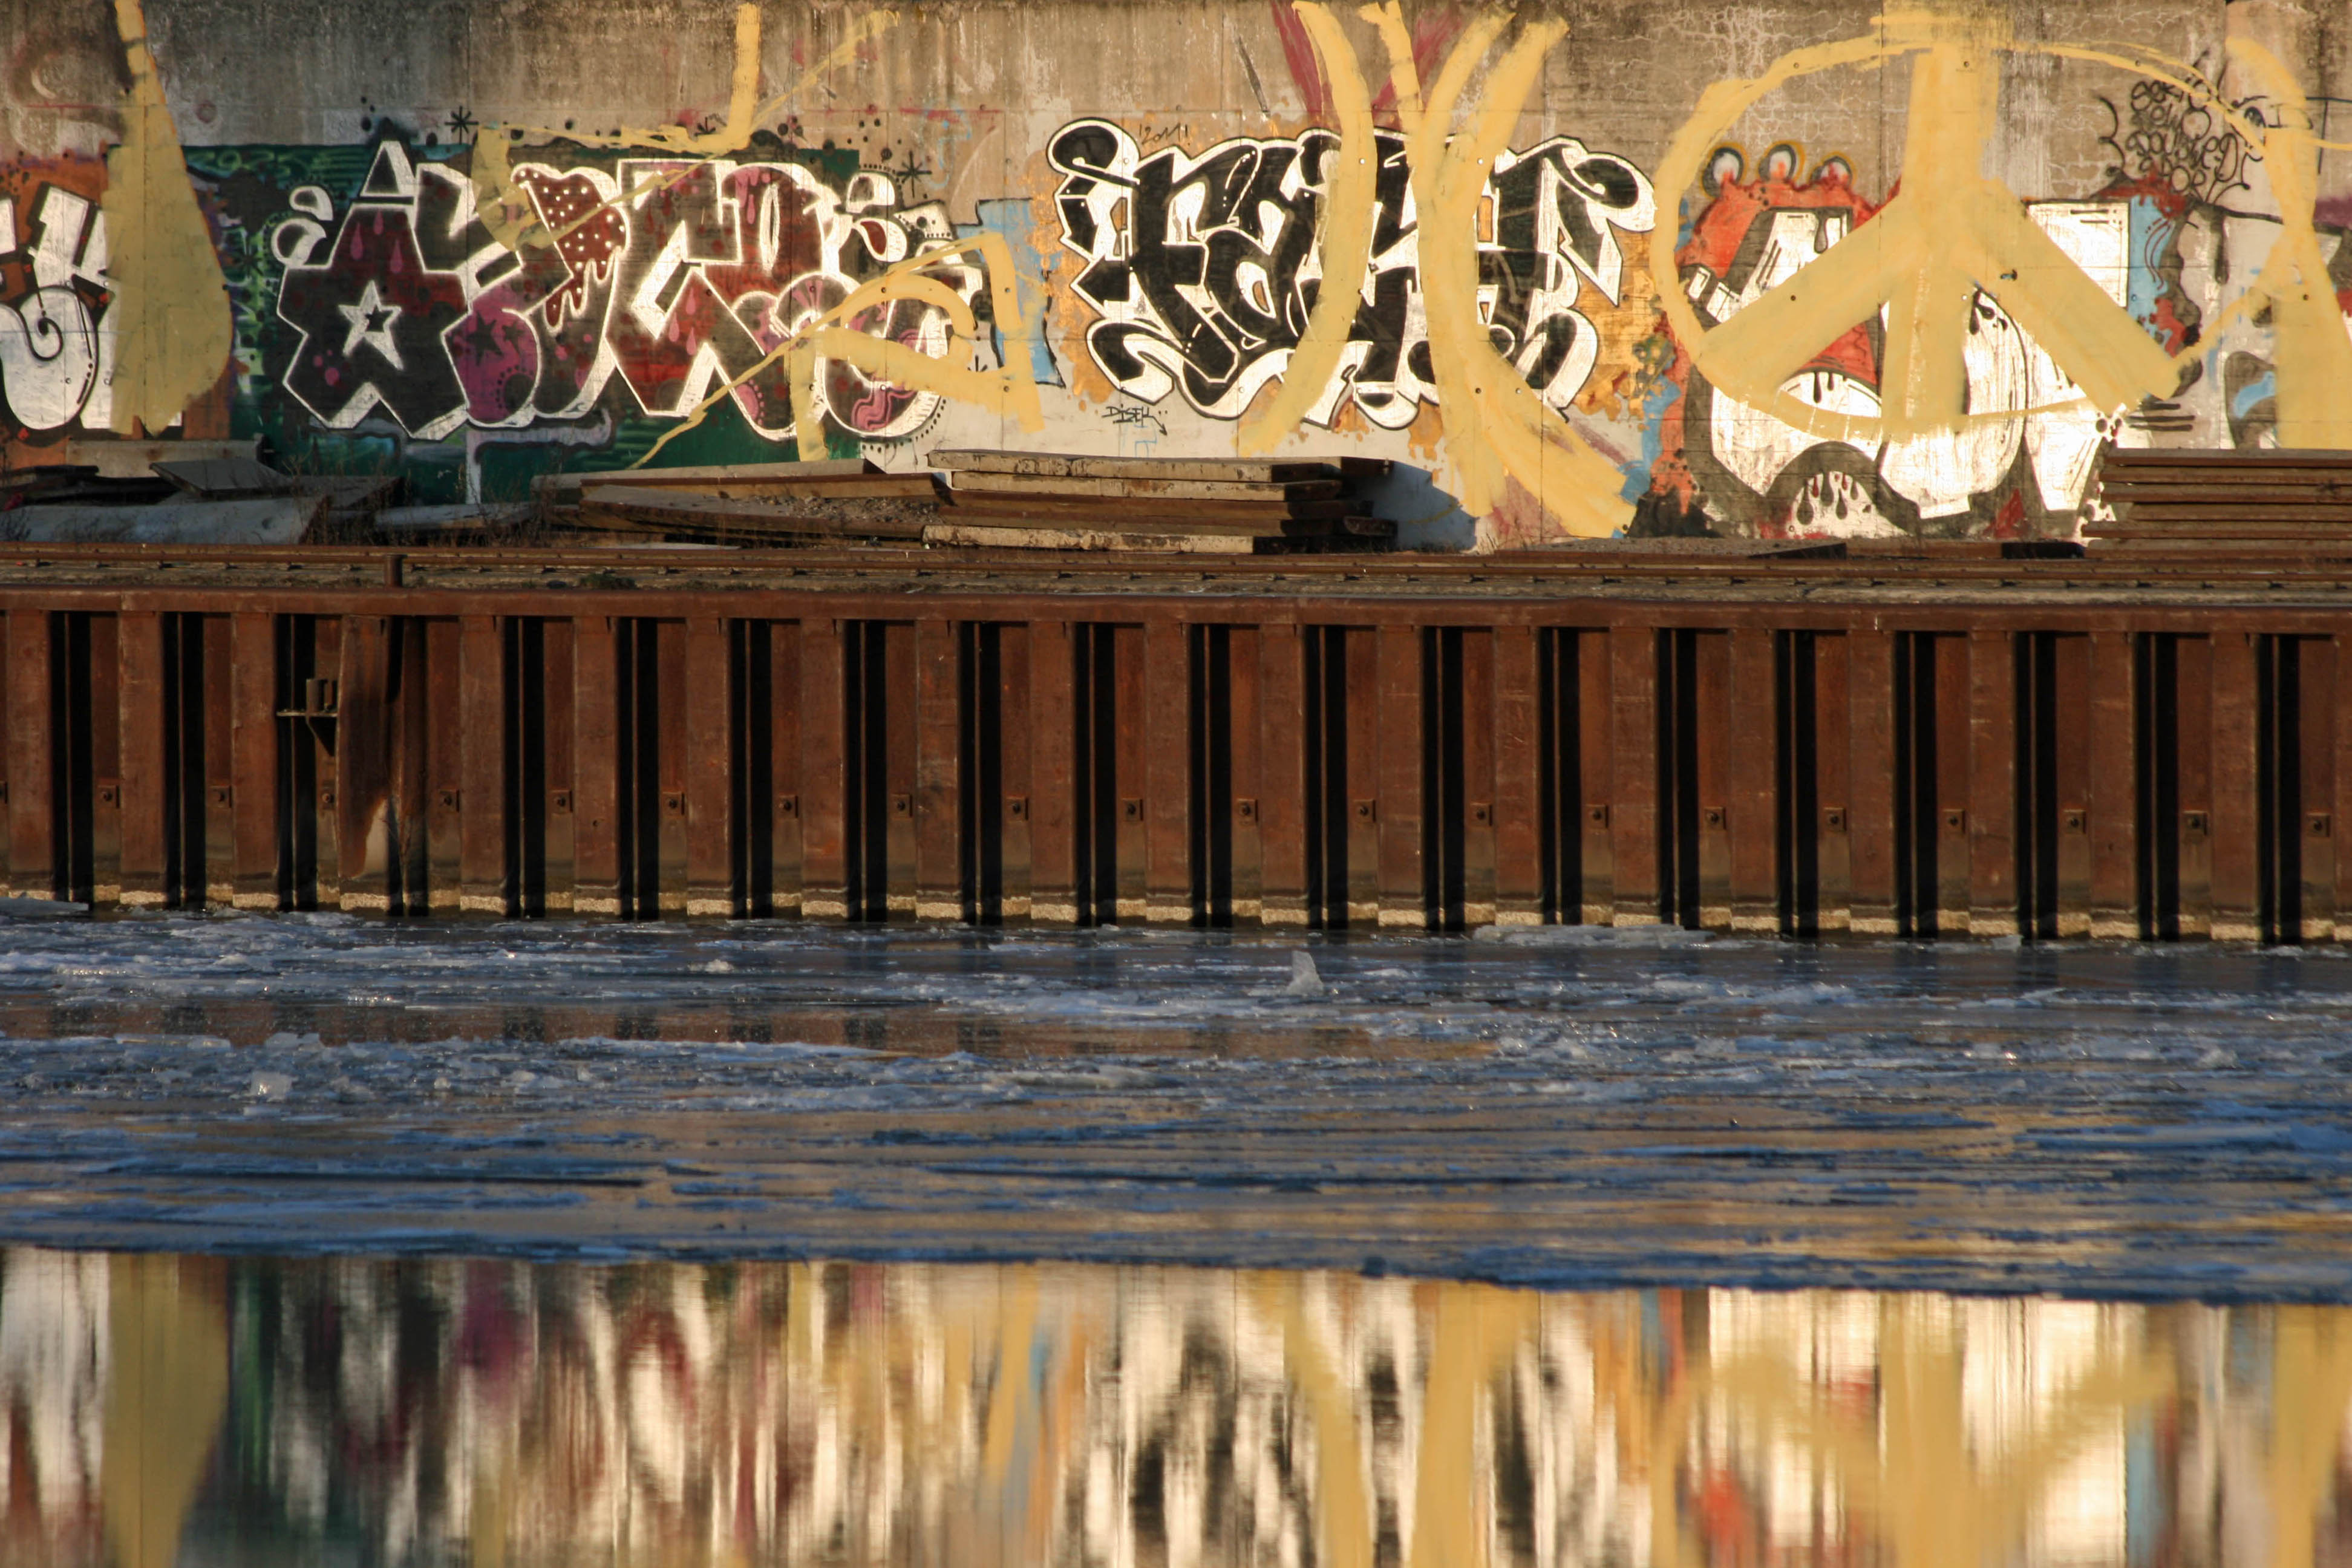 Graffiti on the bank of the partially frozen Spree in a Berlin Winter